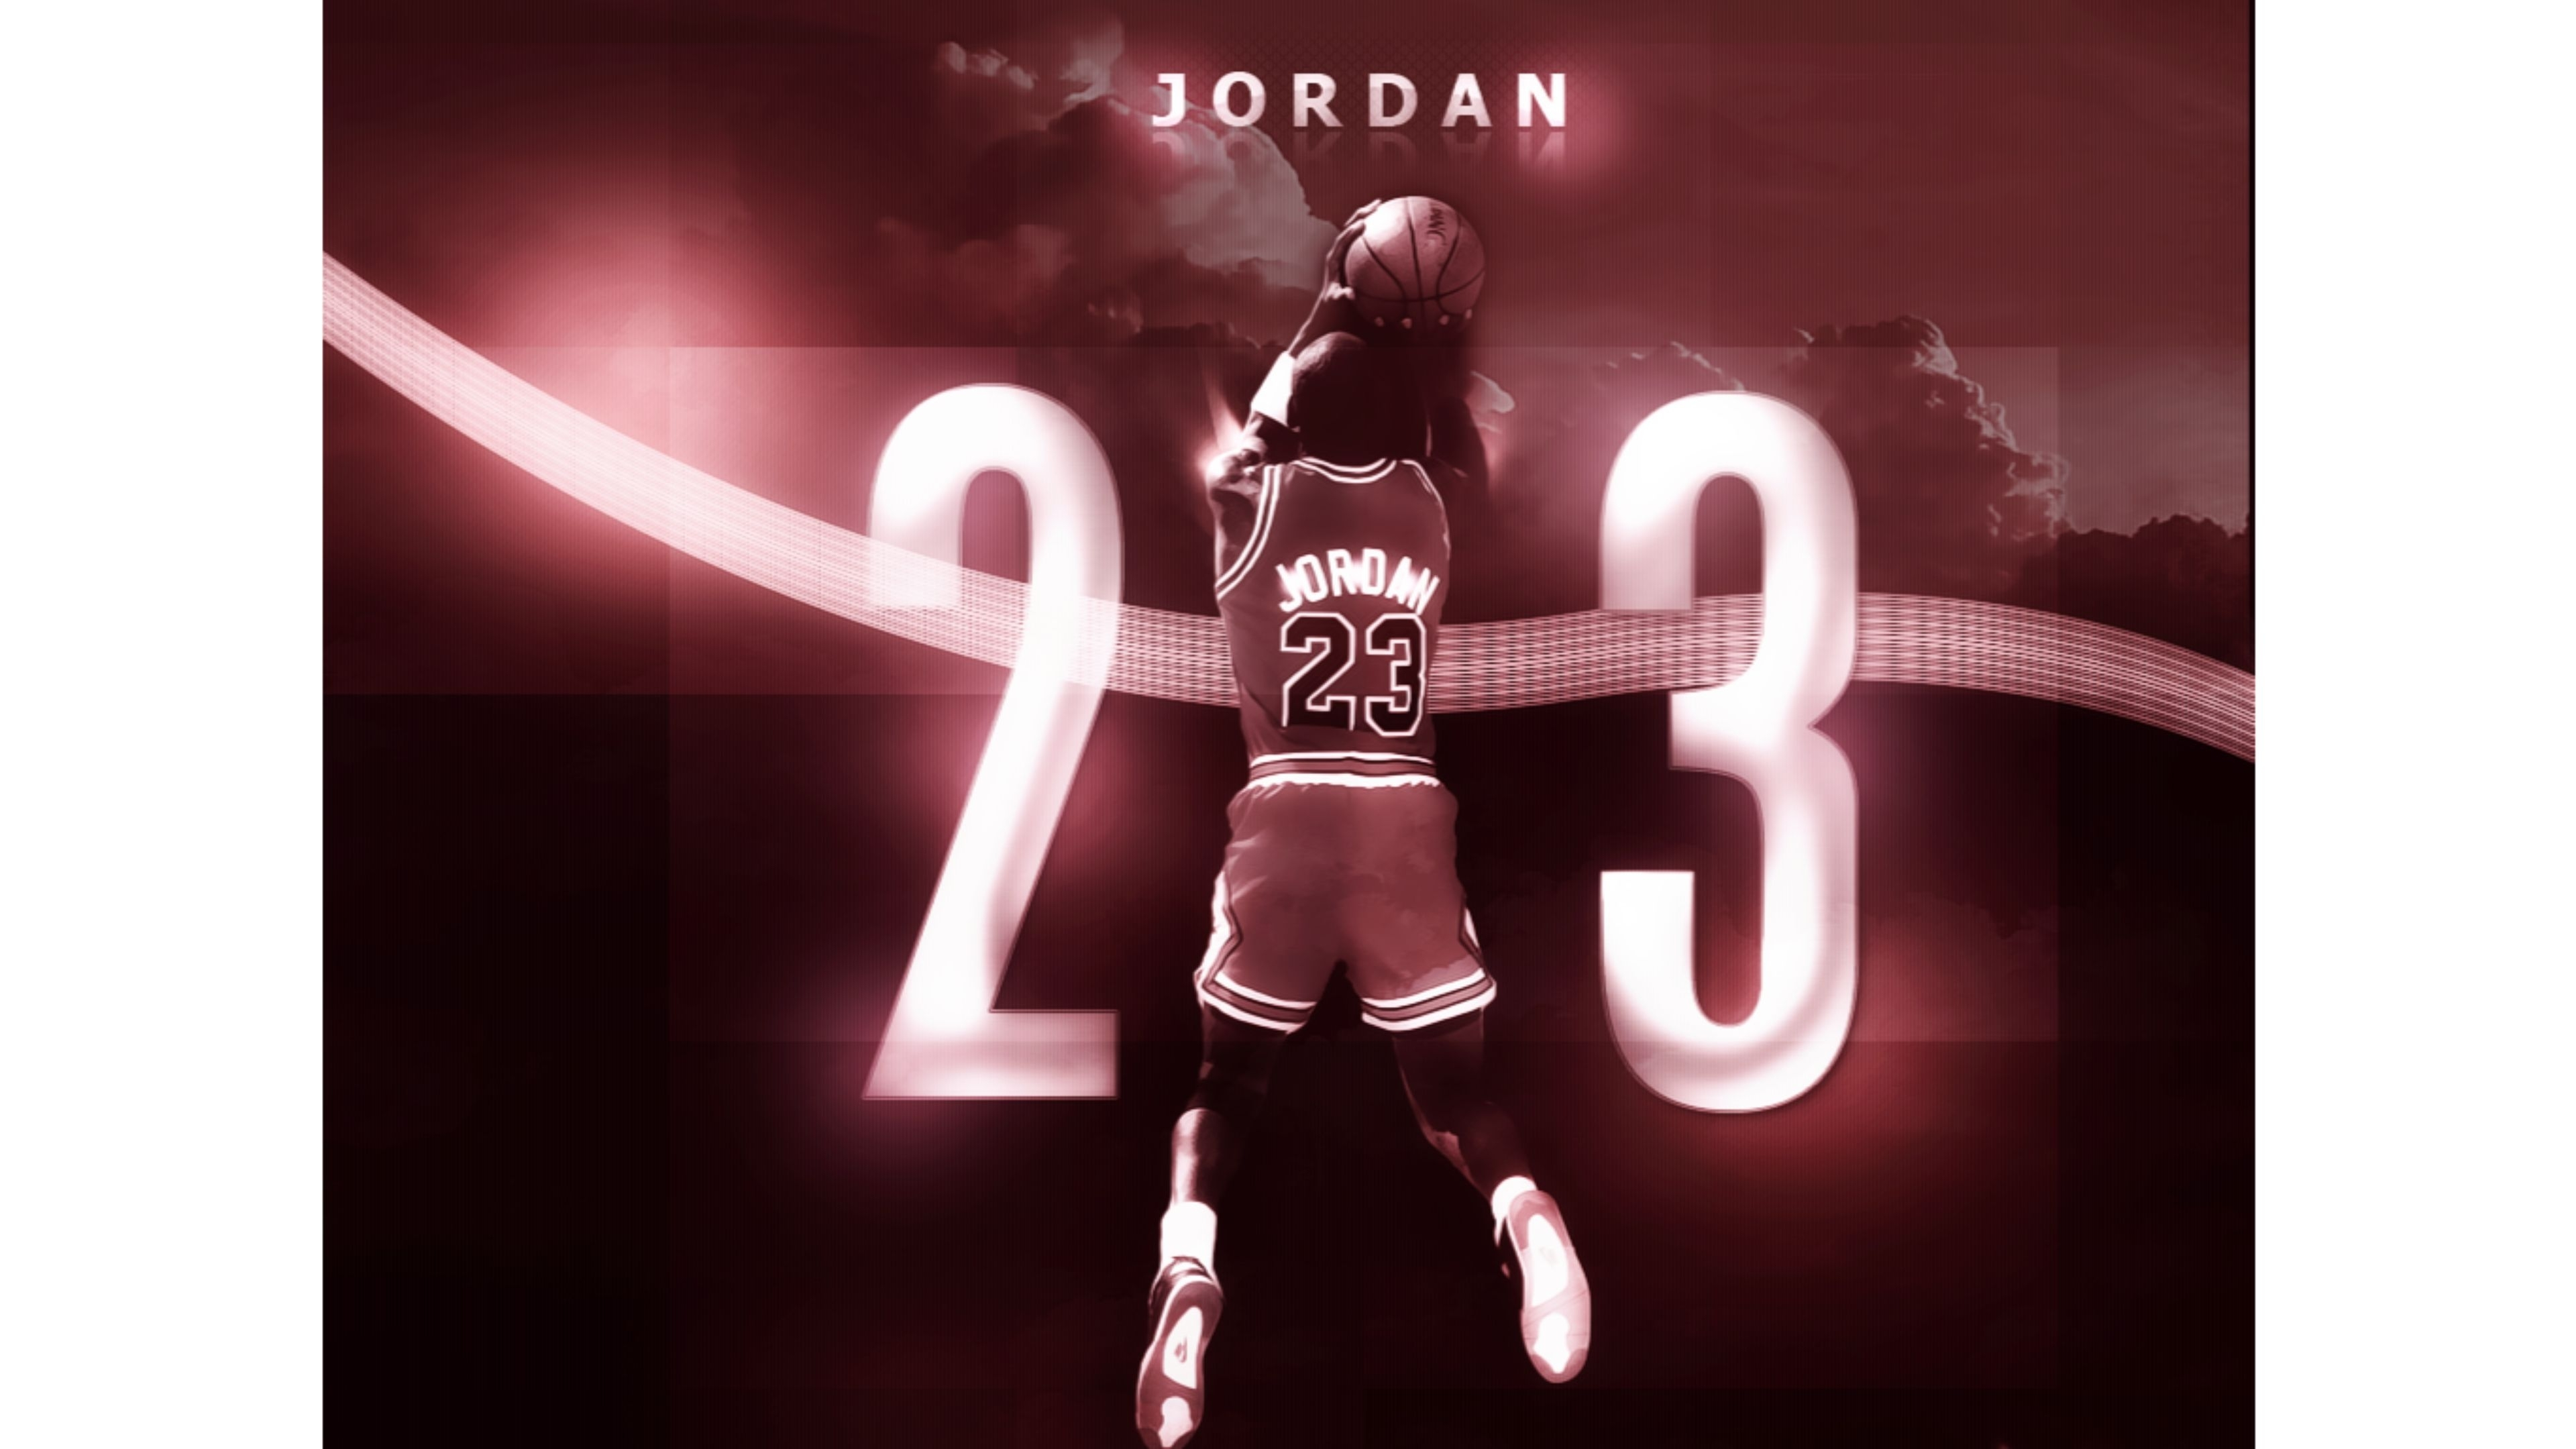 Michael Jordan 23 Wallpaper: 10 Latest Michael Jordan 23 Wallpaper FULL HD 1080p For PC